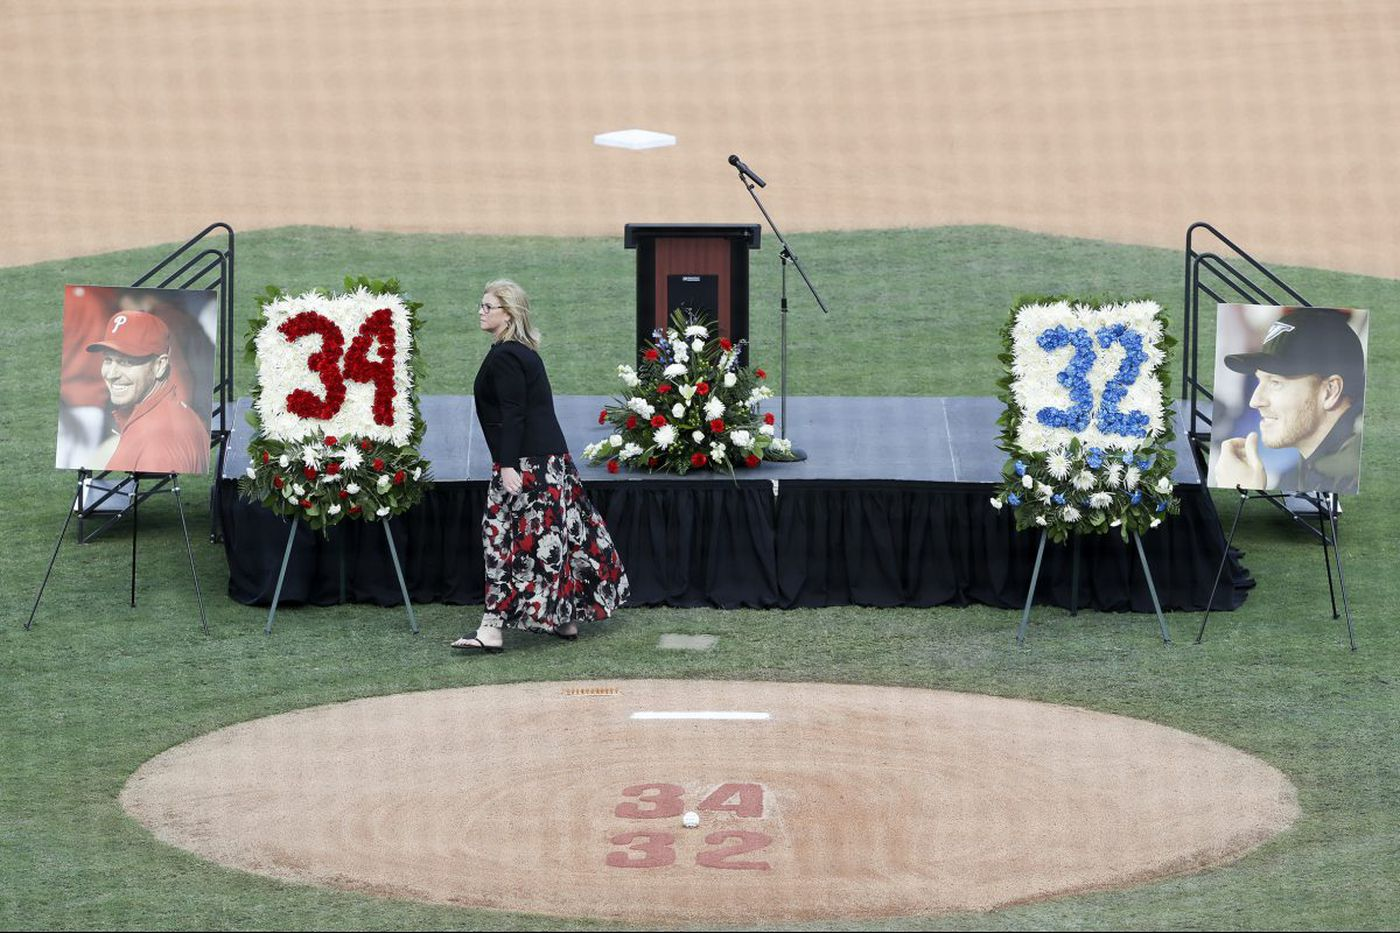 Report: Roy Halladay had fatal level of amphetamines at time of death